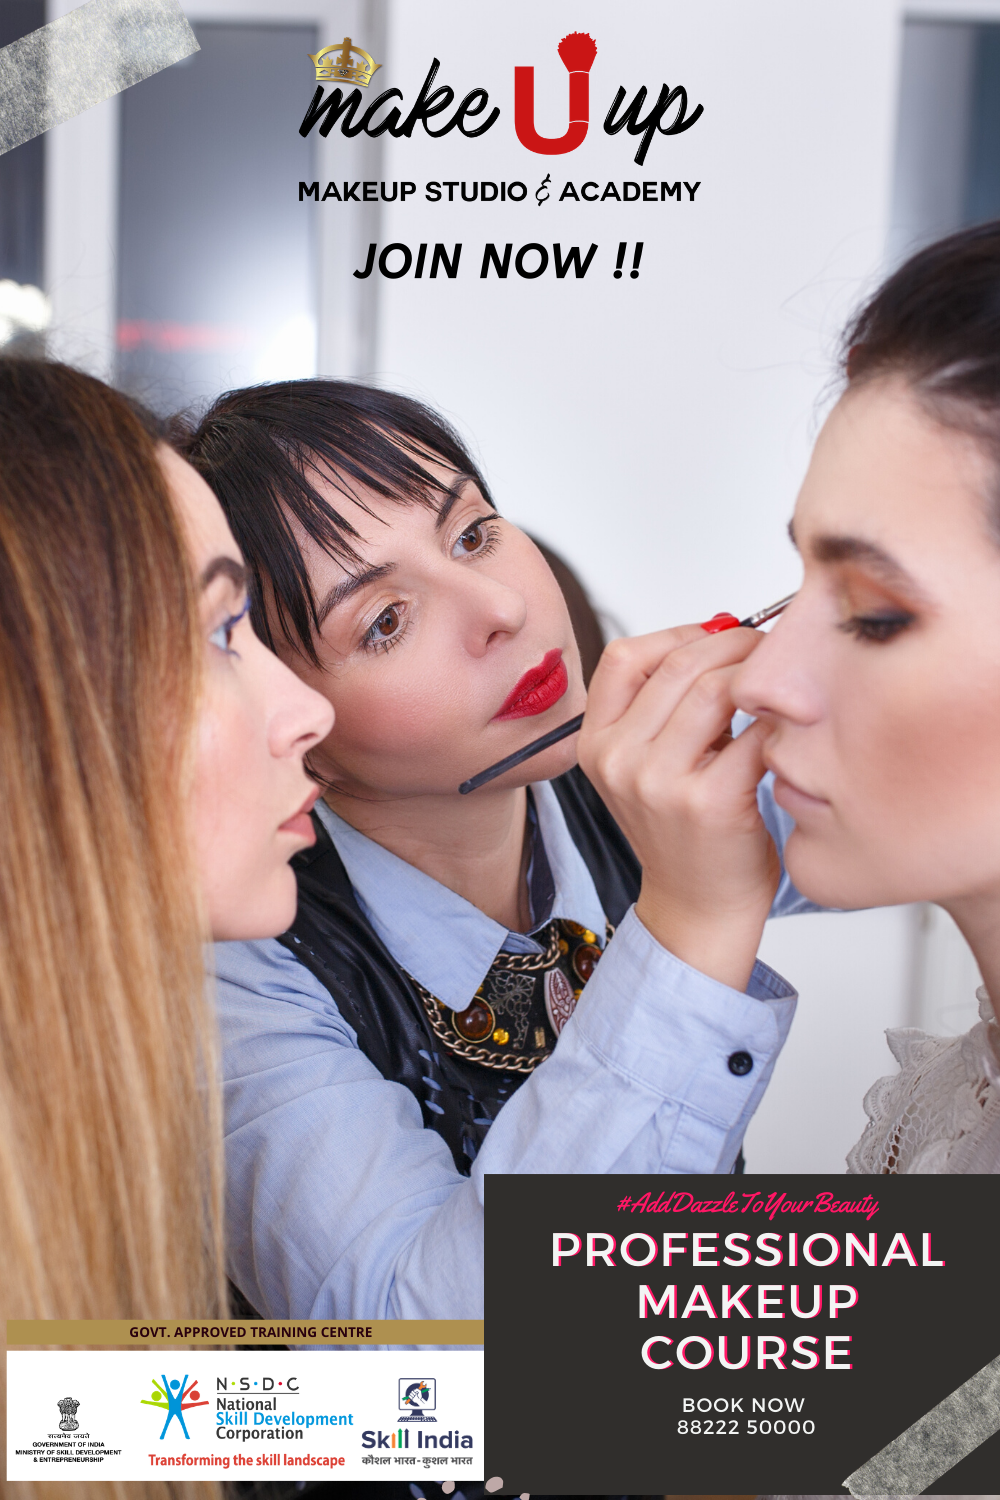 Makeup Courses Professional Makeup in 2020 Makeup